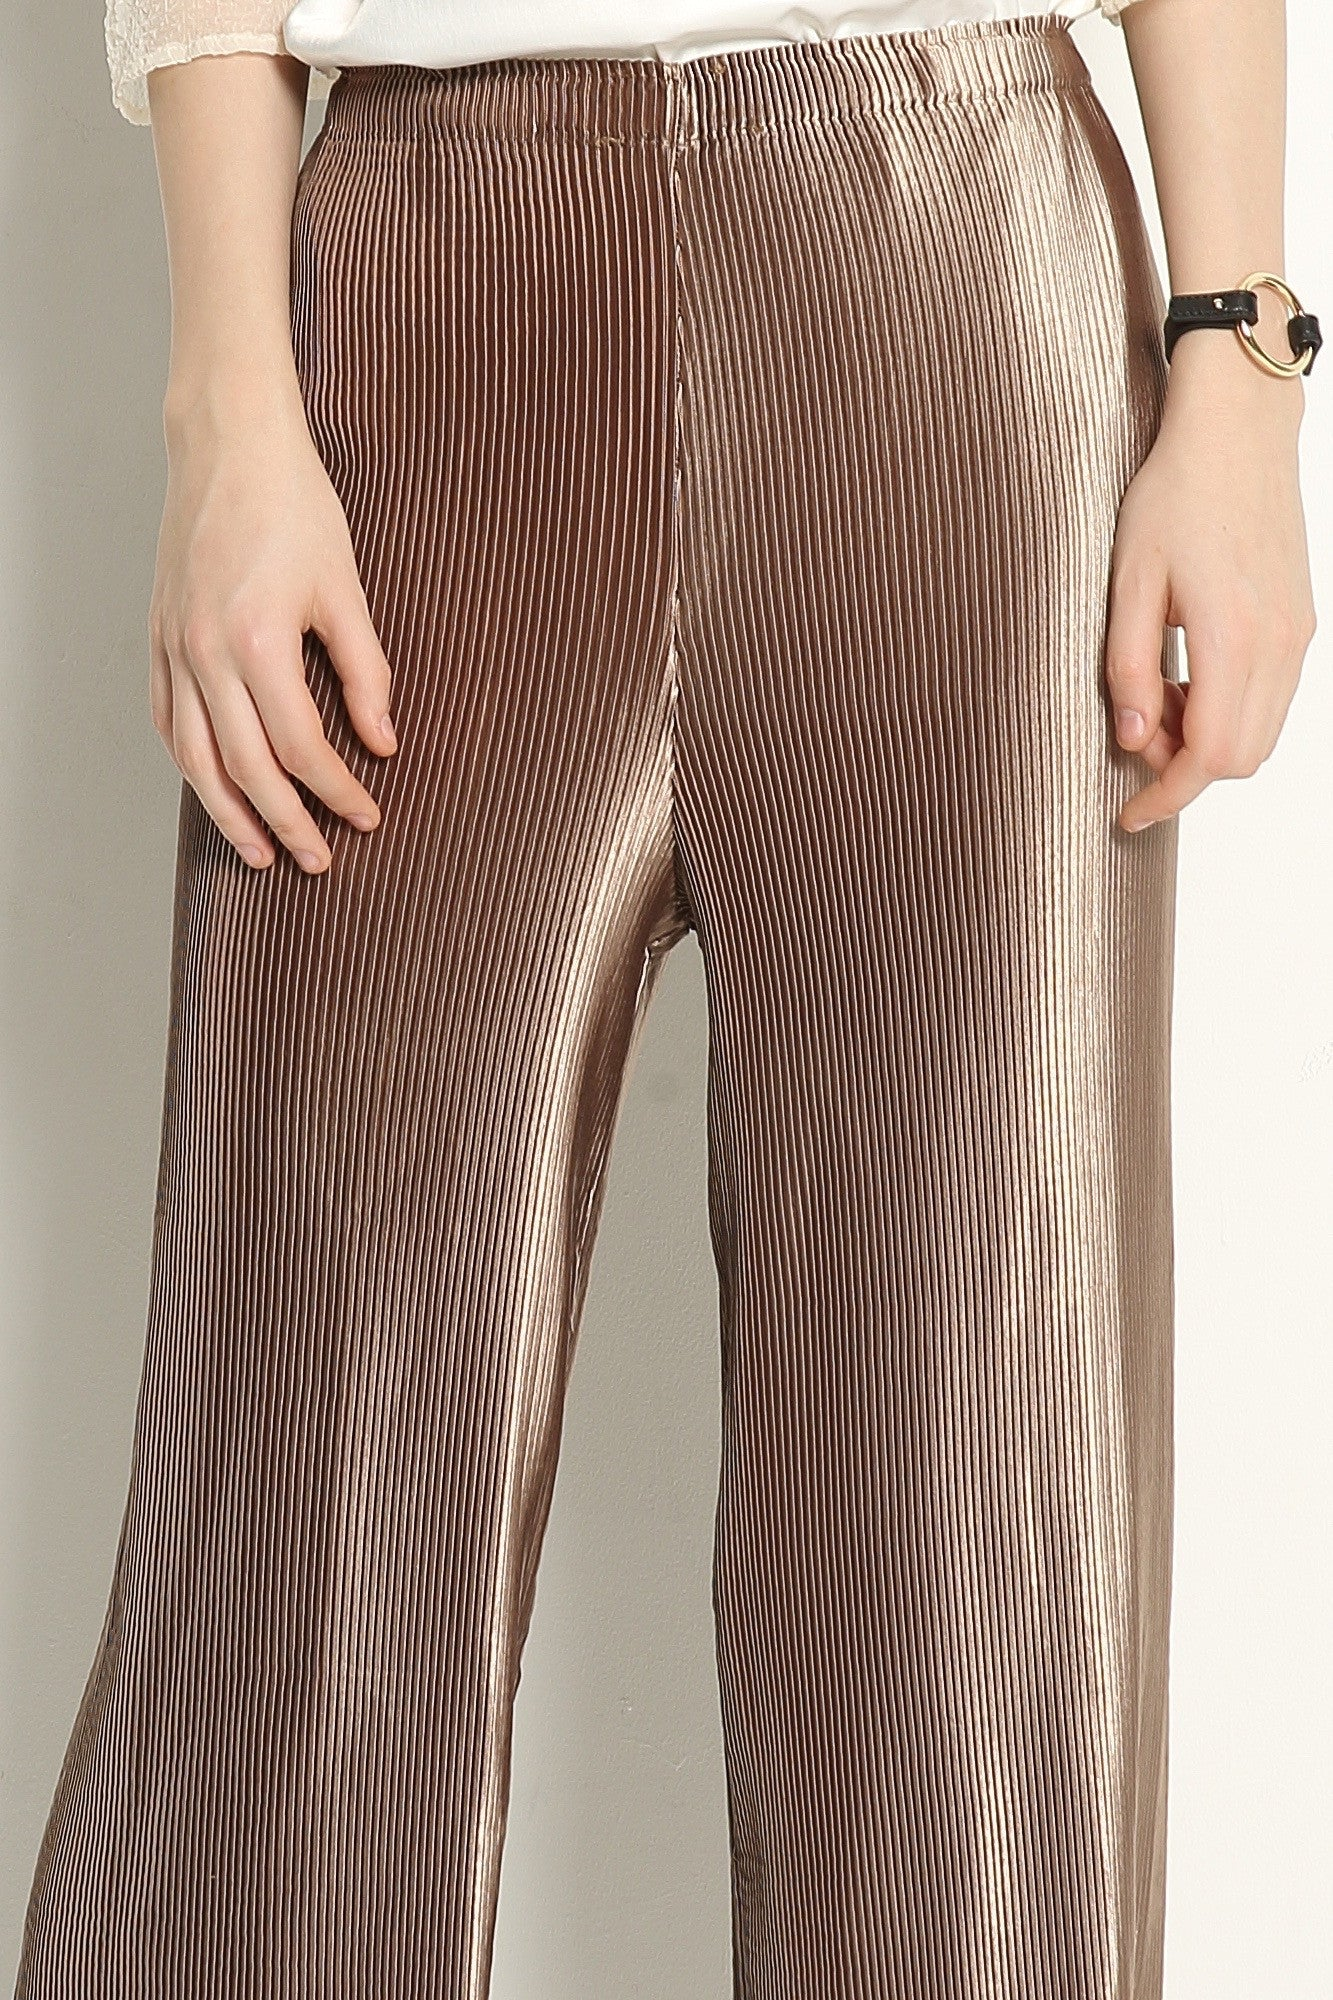 Metallic Pleat Trousers - GlanceZ   - 6